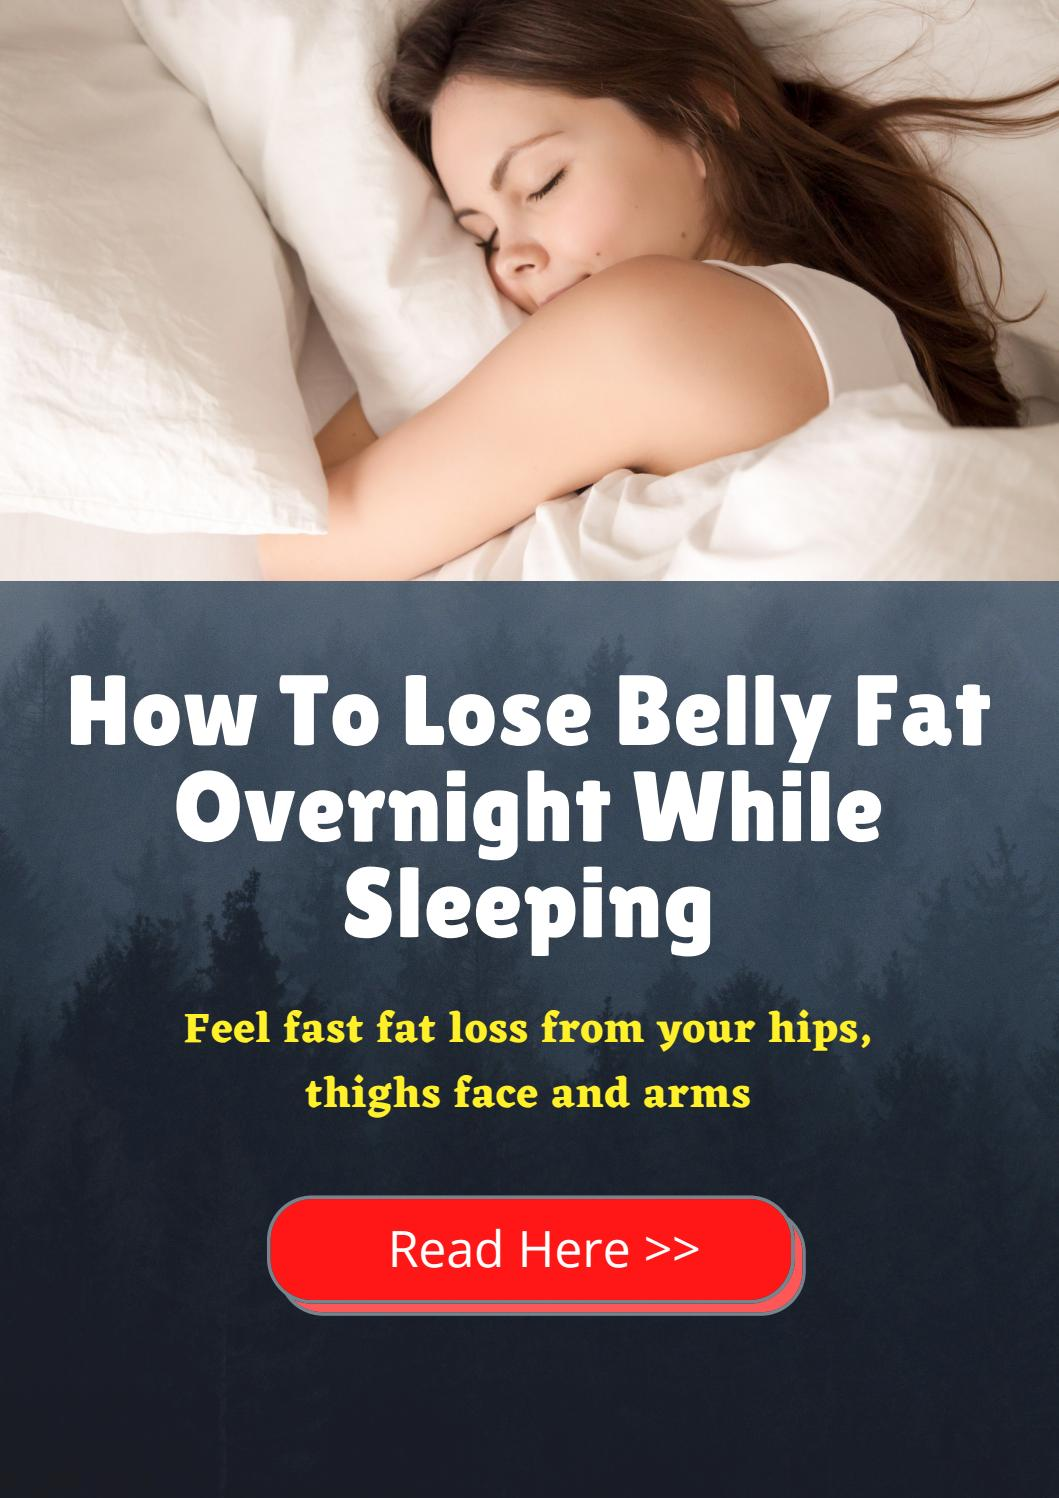 How to lose belly fat overnight wrap by Emillia - issuu